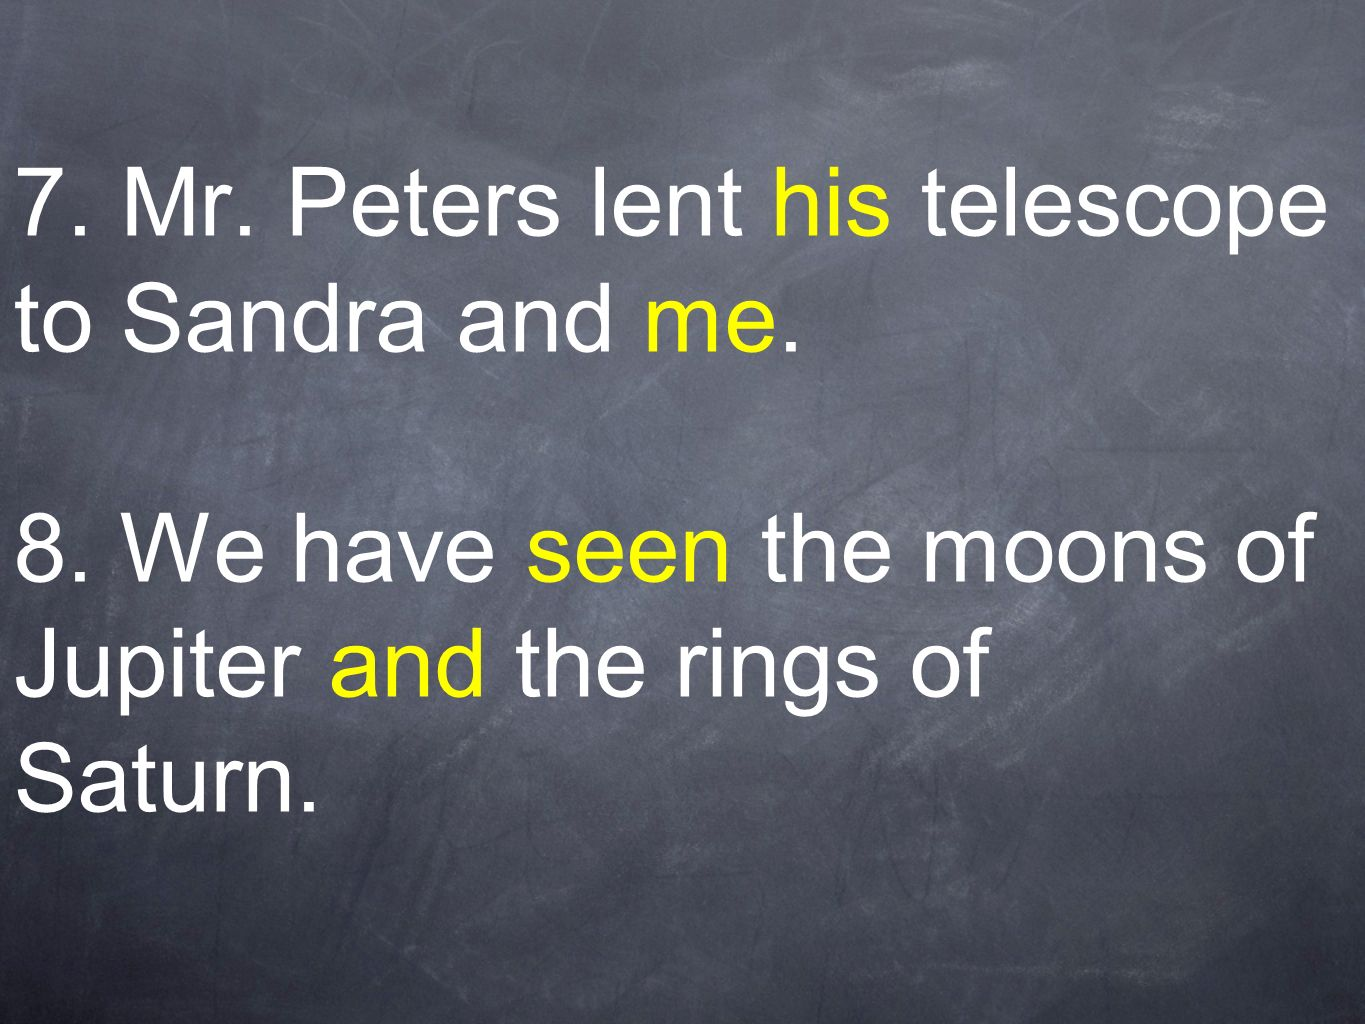 7. Mr. Peters lent his telescope to Sandra and me. 8. We have seen the moons of Jupiter and the rings of Saturn.